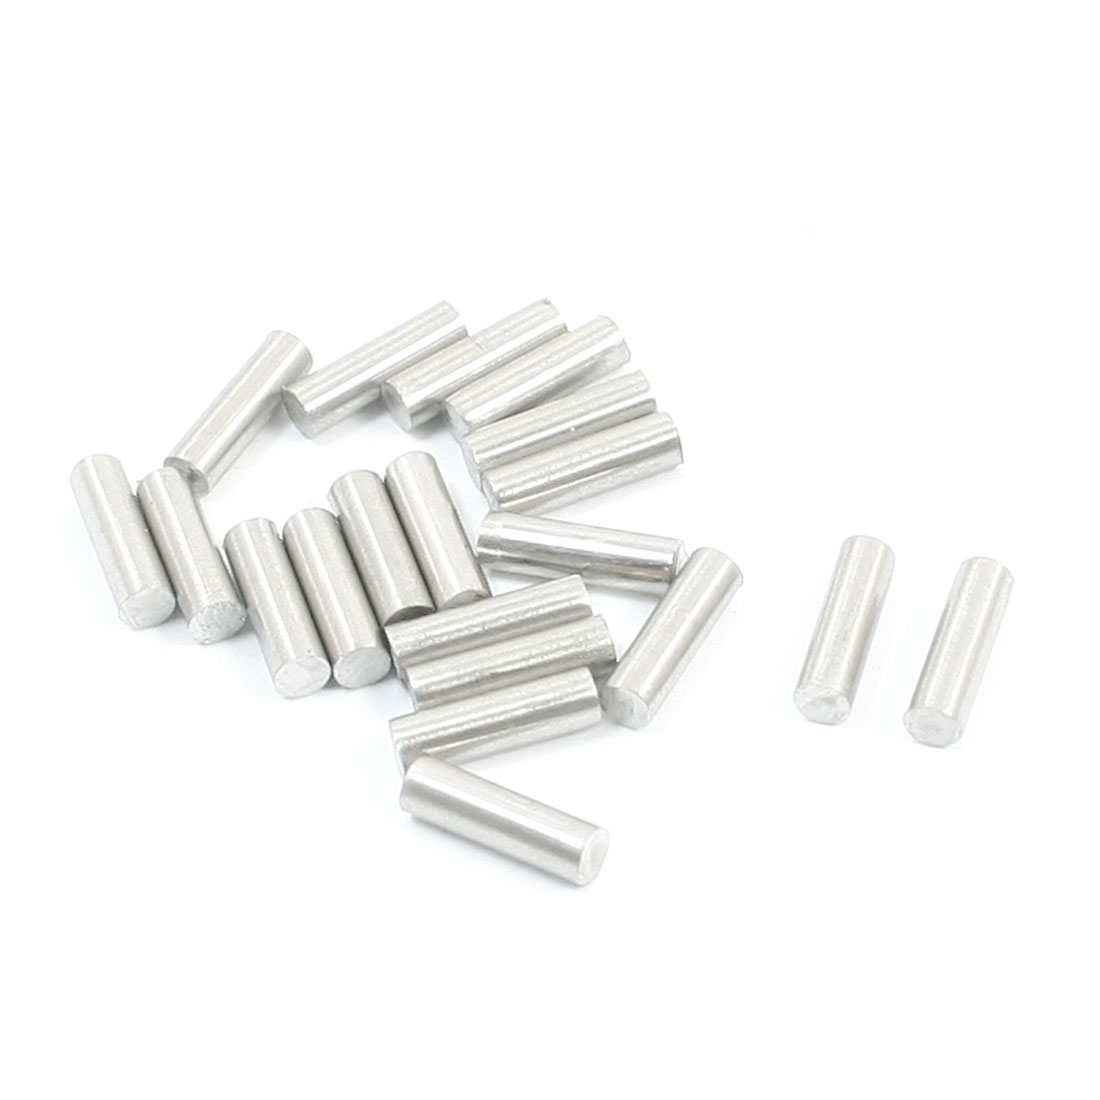 20pcs 10mm x 3mm Stainless Steel DIY Toy Model Drive Connecting Rod